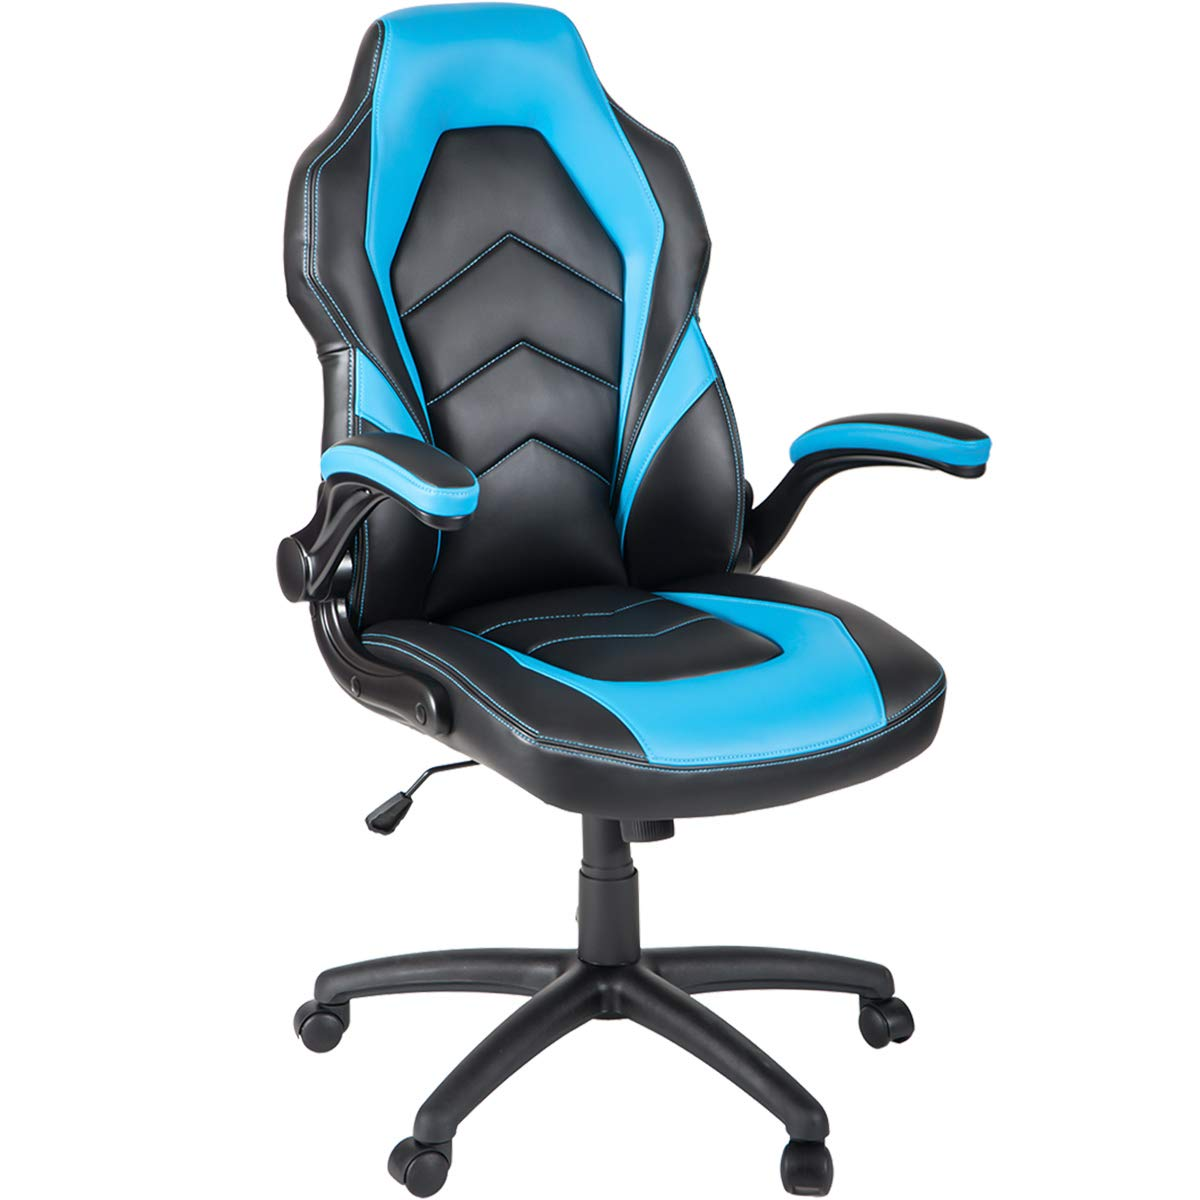 Modern Luxe Ergonomic Office Chair Swivel Chair High Back Racing Style PU Leather Gaming Chair with Flipped Armrests (Blue) by Modern Luxe